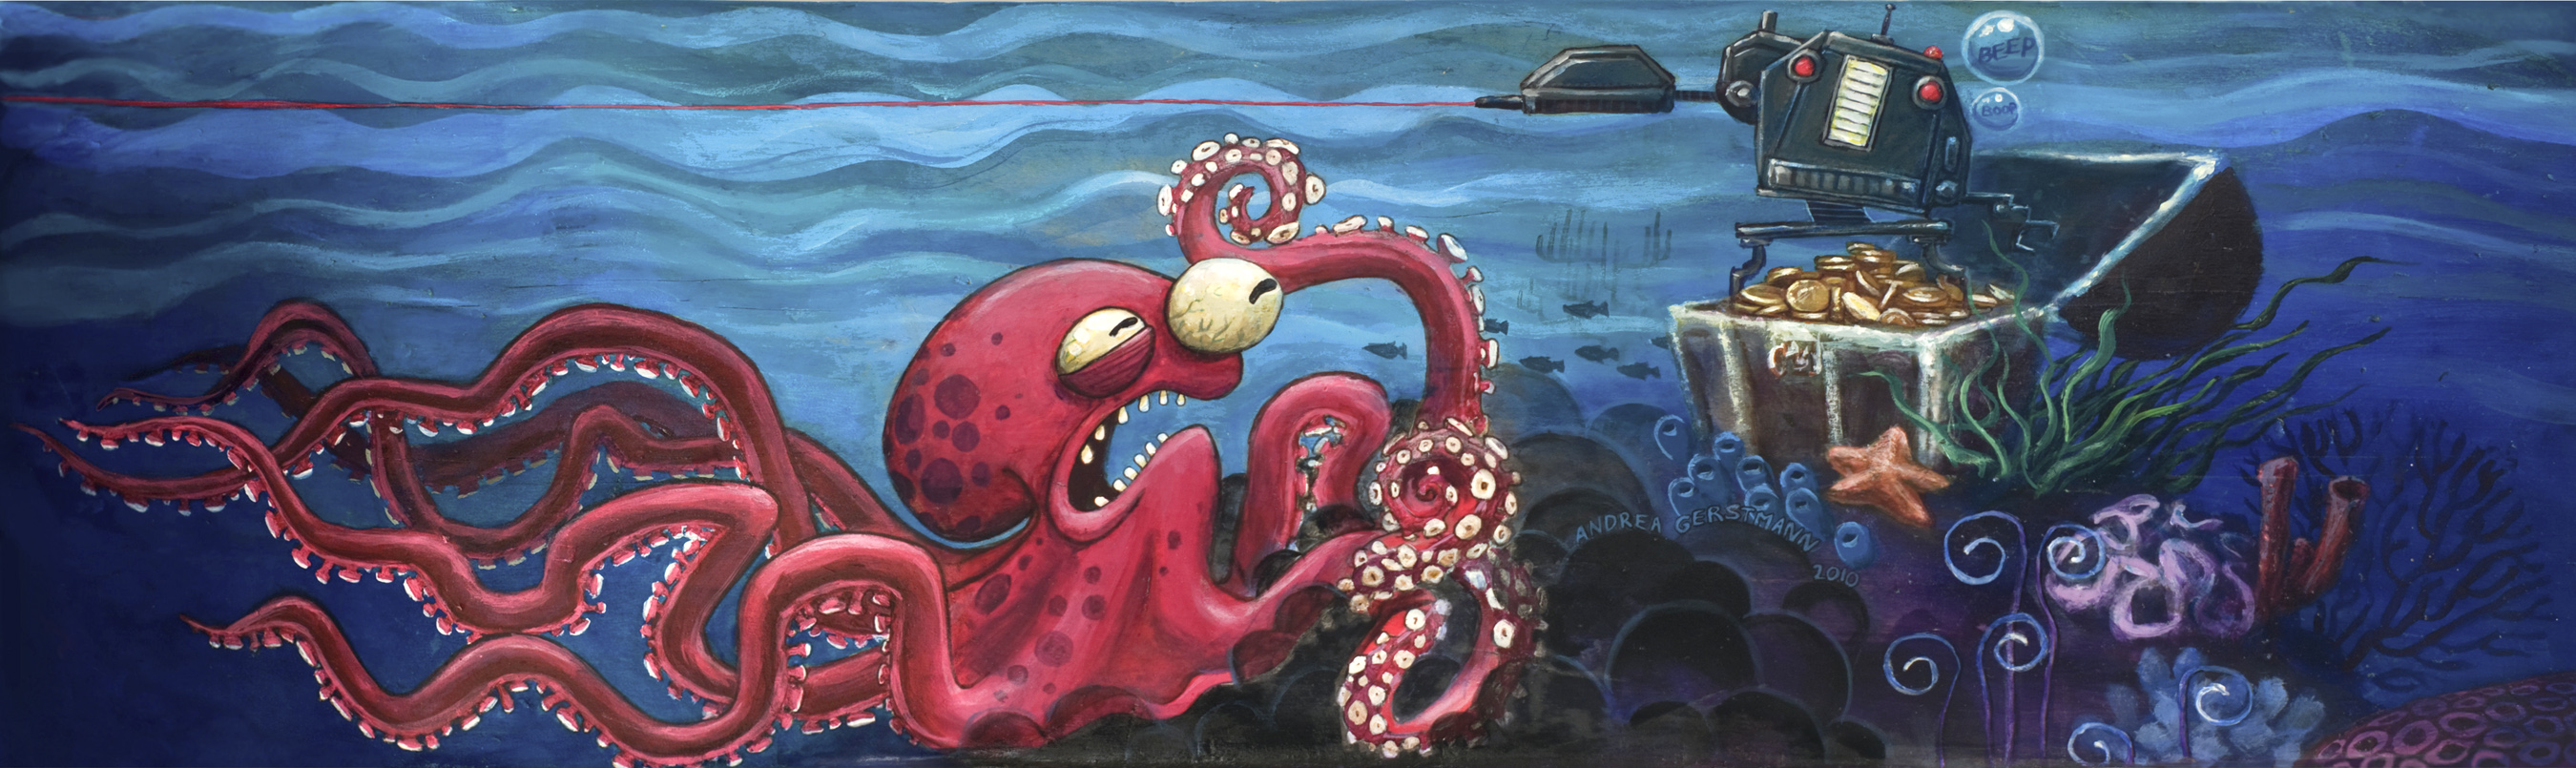 Octopus vs Robot